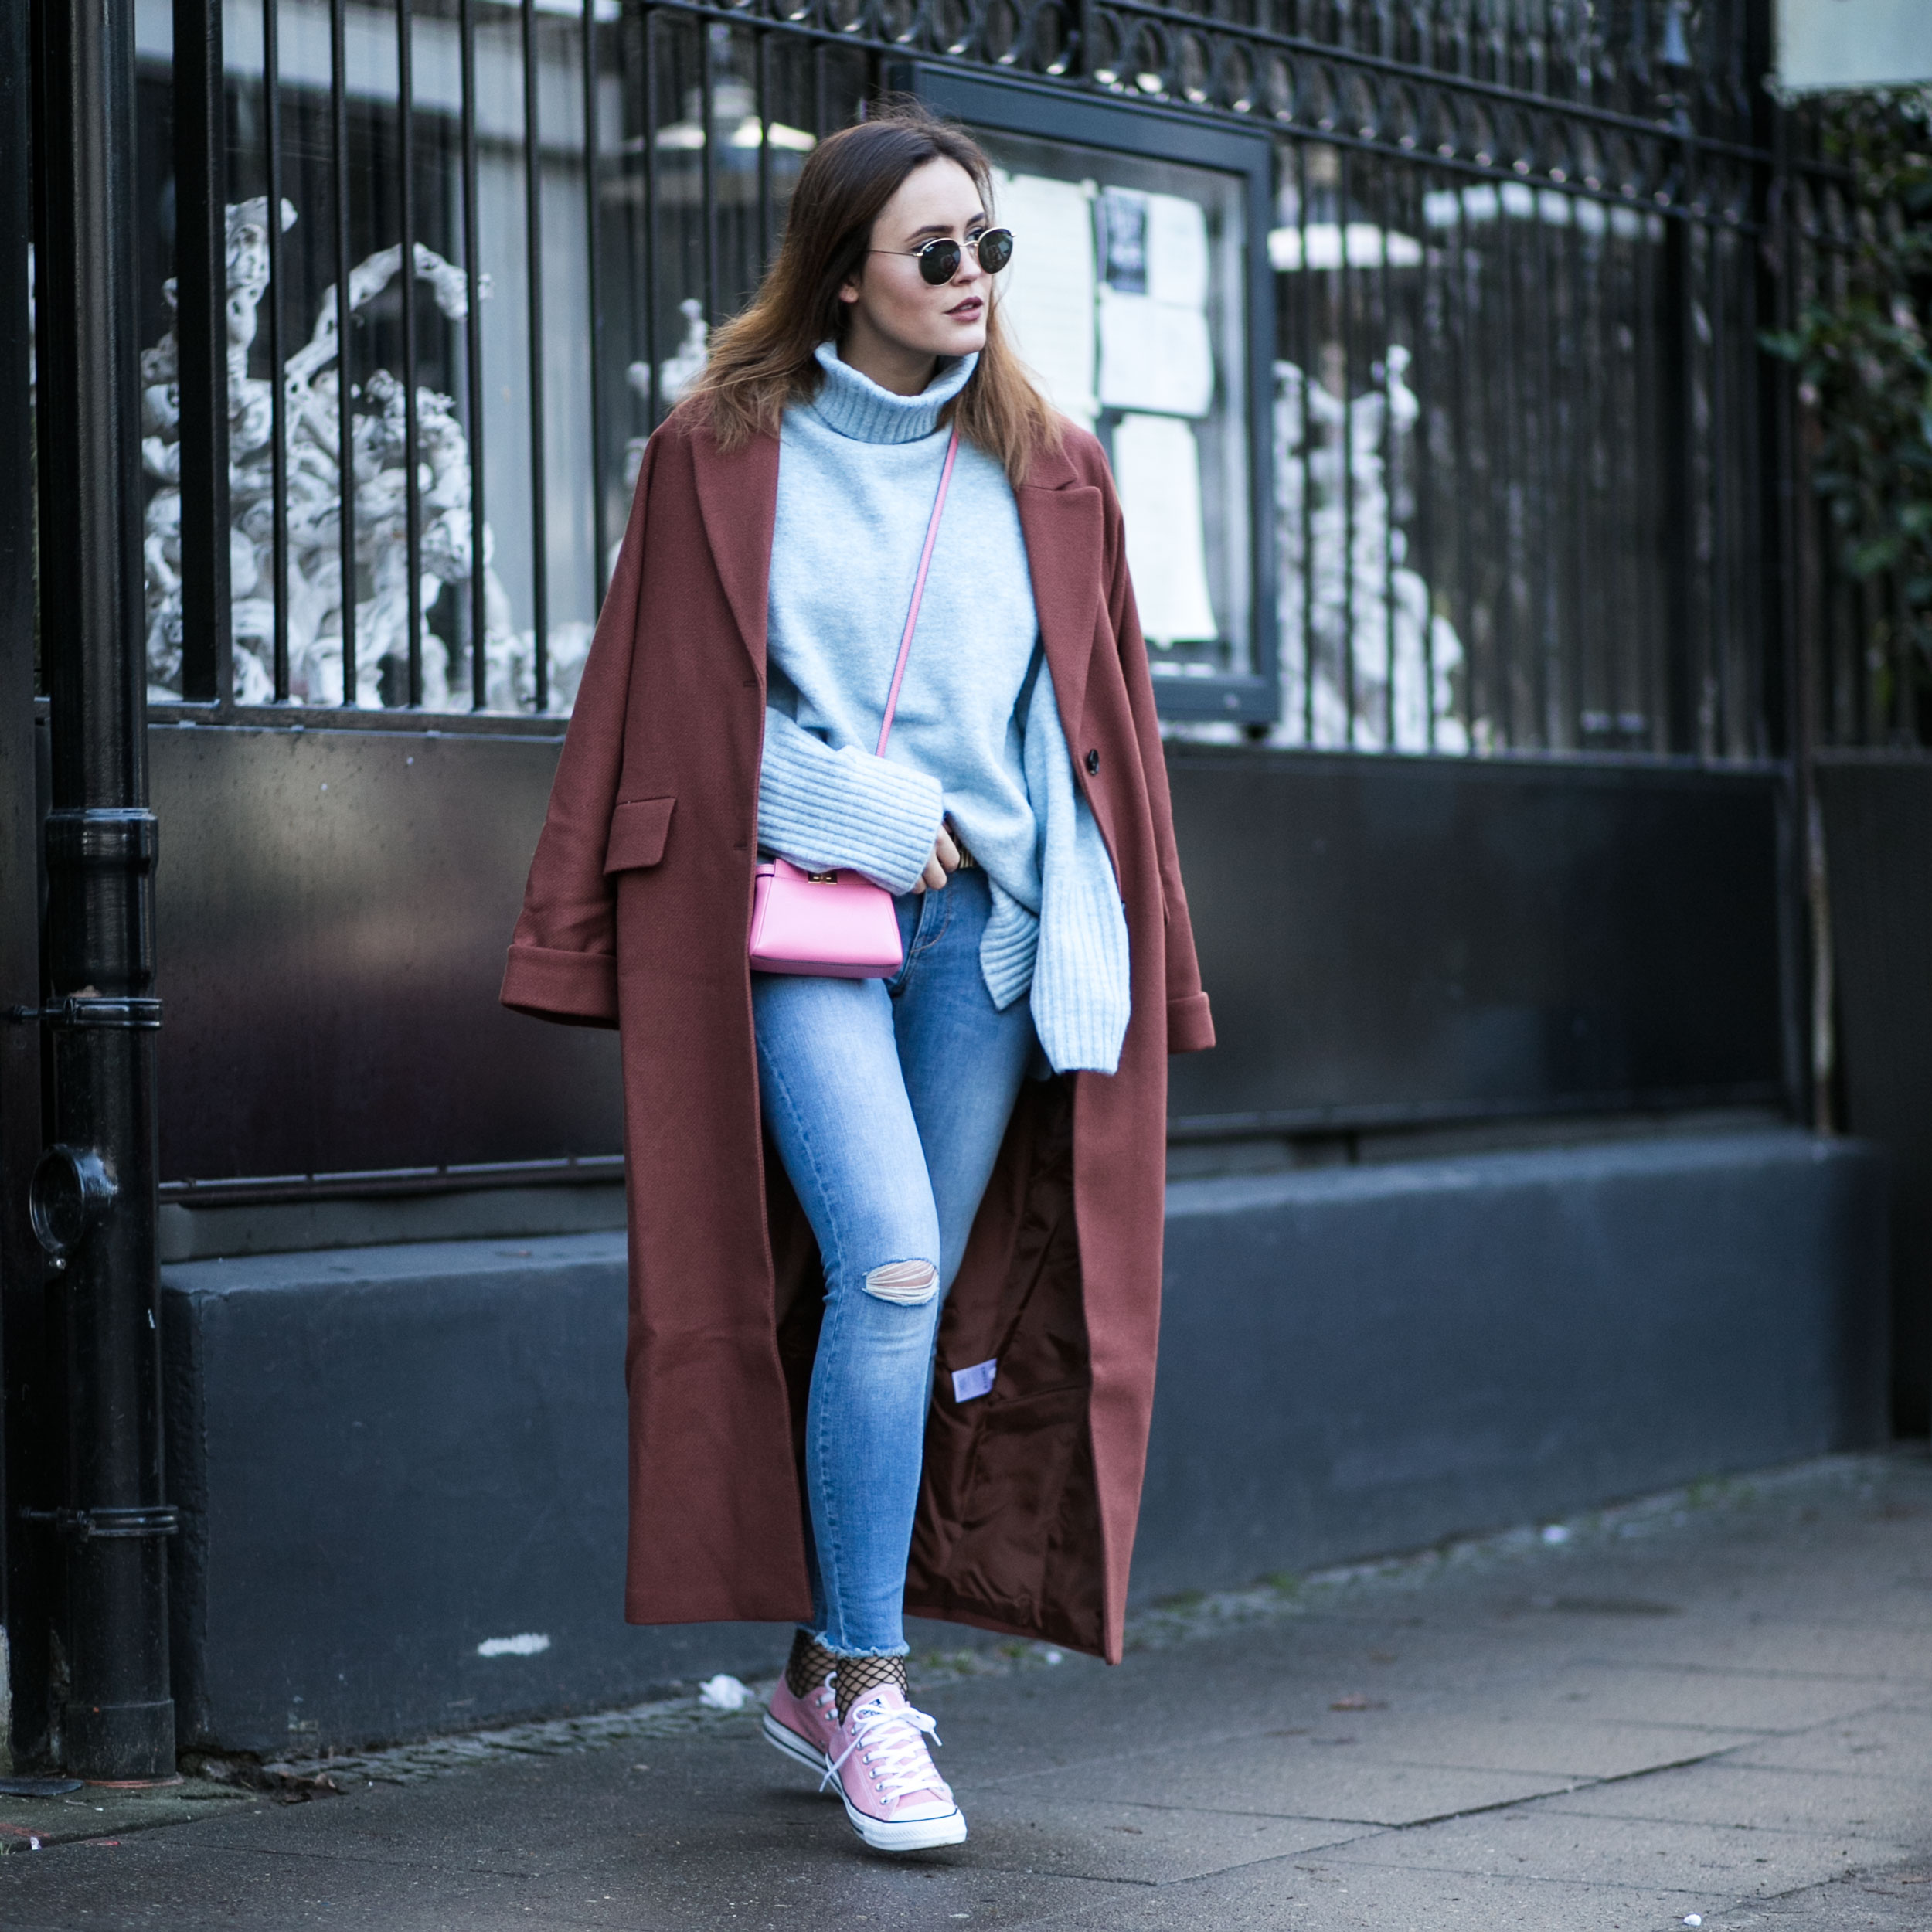 SUNDAY LOOK – BLUE KNIT WITH COGNAC COLORED COAT